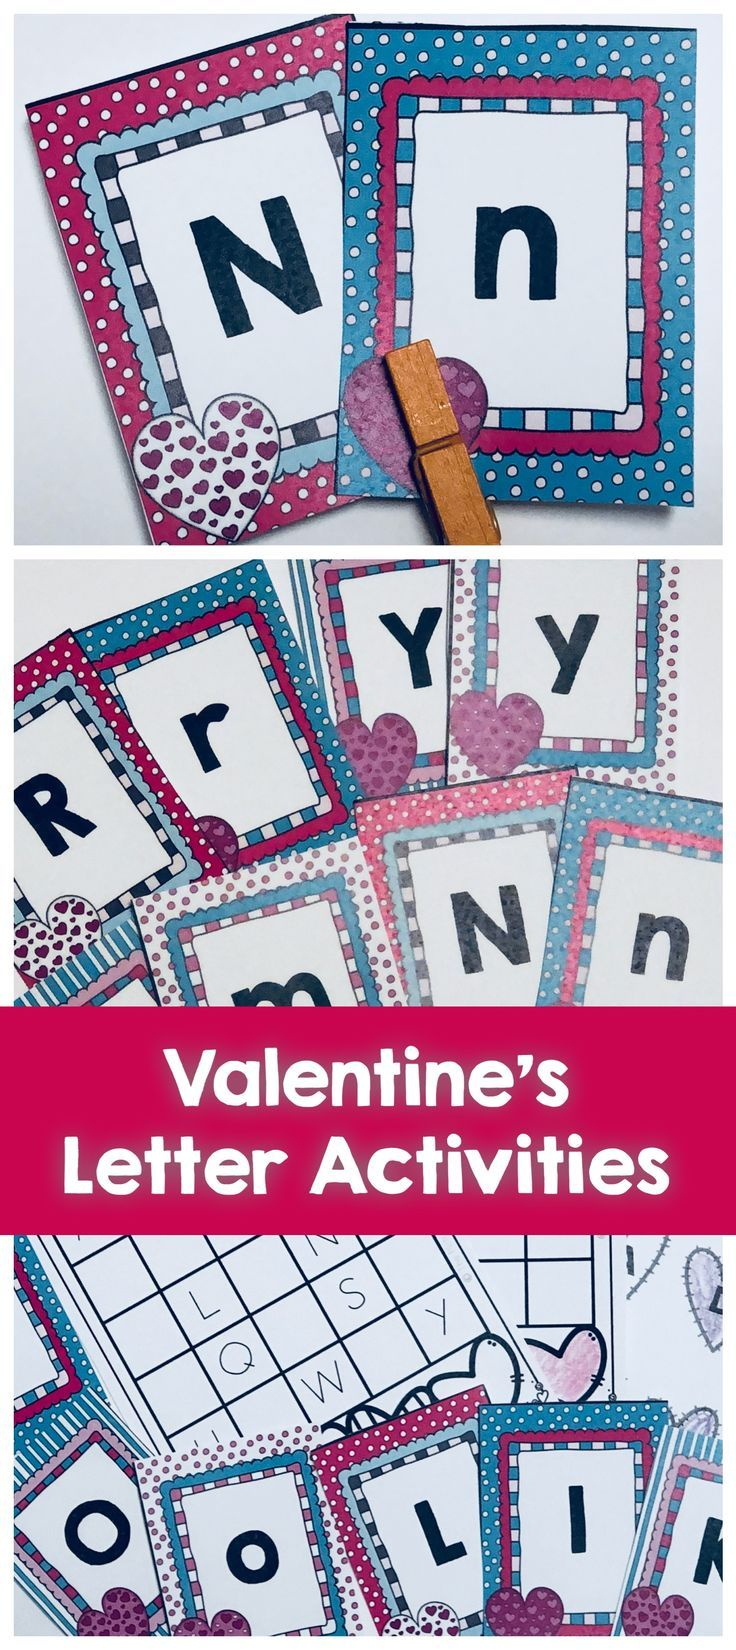 Valentine's Letter matching activities include all letters A-Z upper and lower case and worksheets for writing, tracing and identifying matching letters of the alphabet.